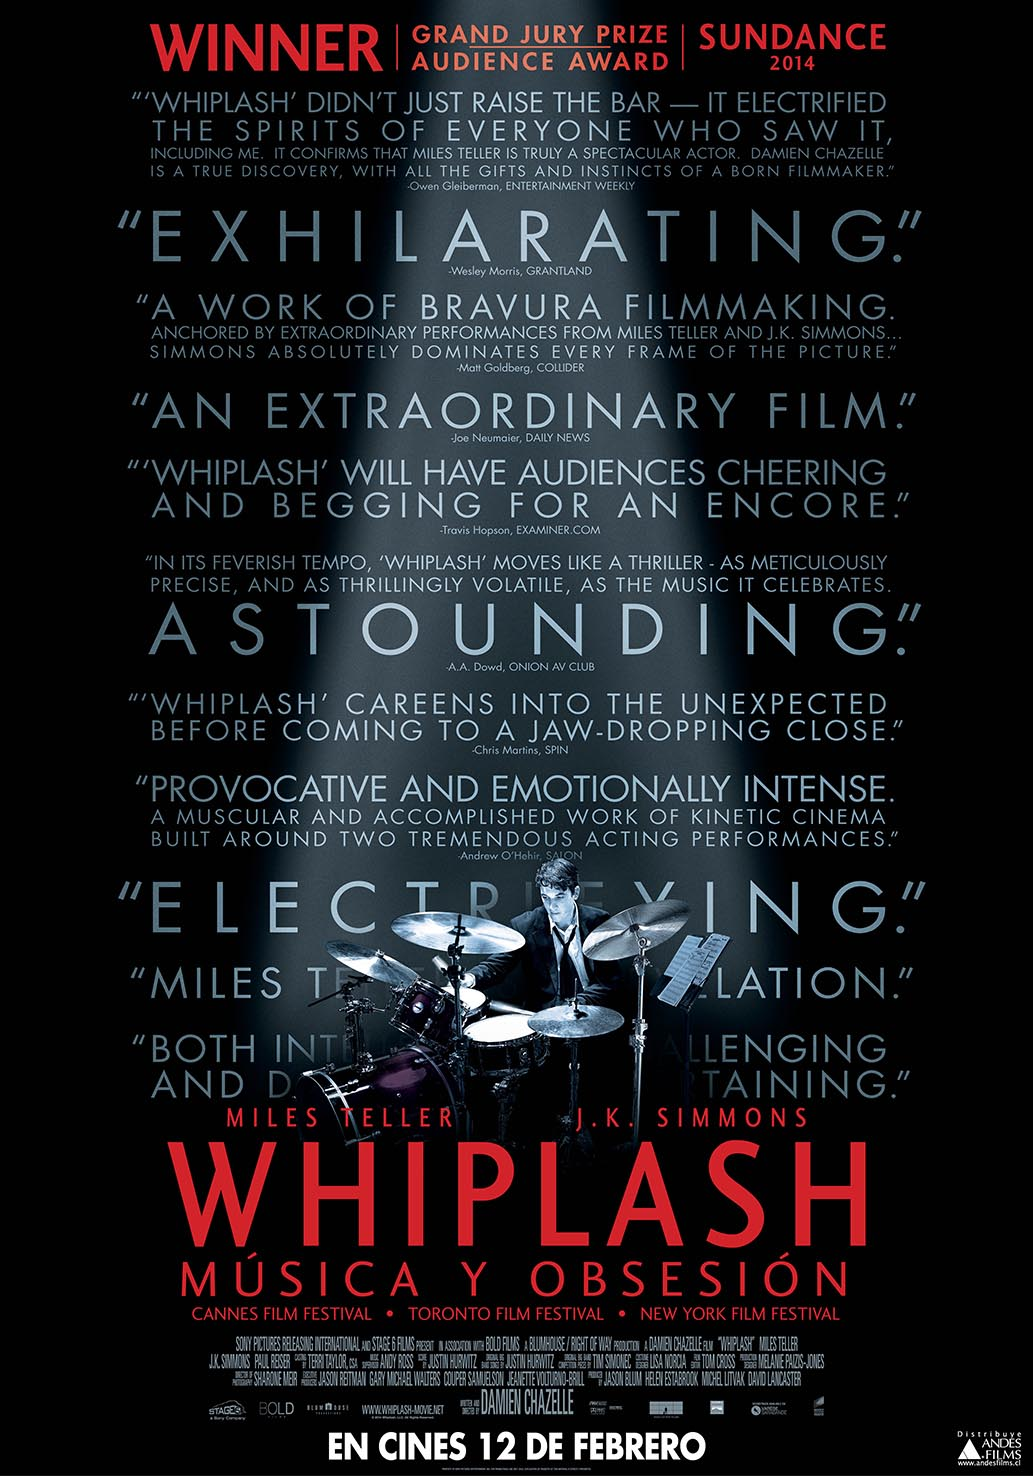 http://www.andesfilms.com.pe/whiplash-musica-y-obsesion/